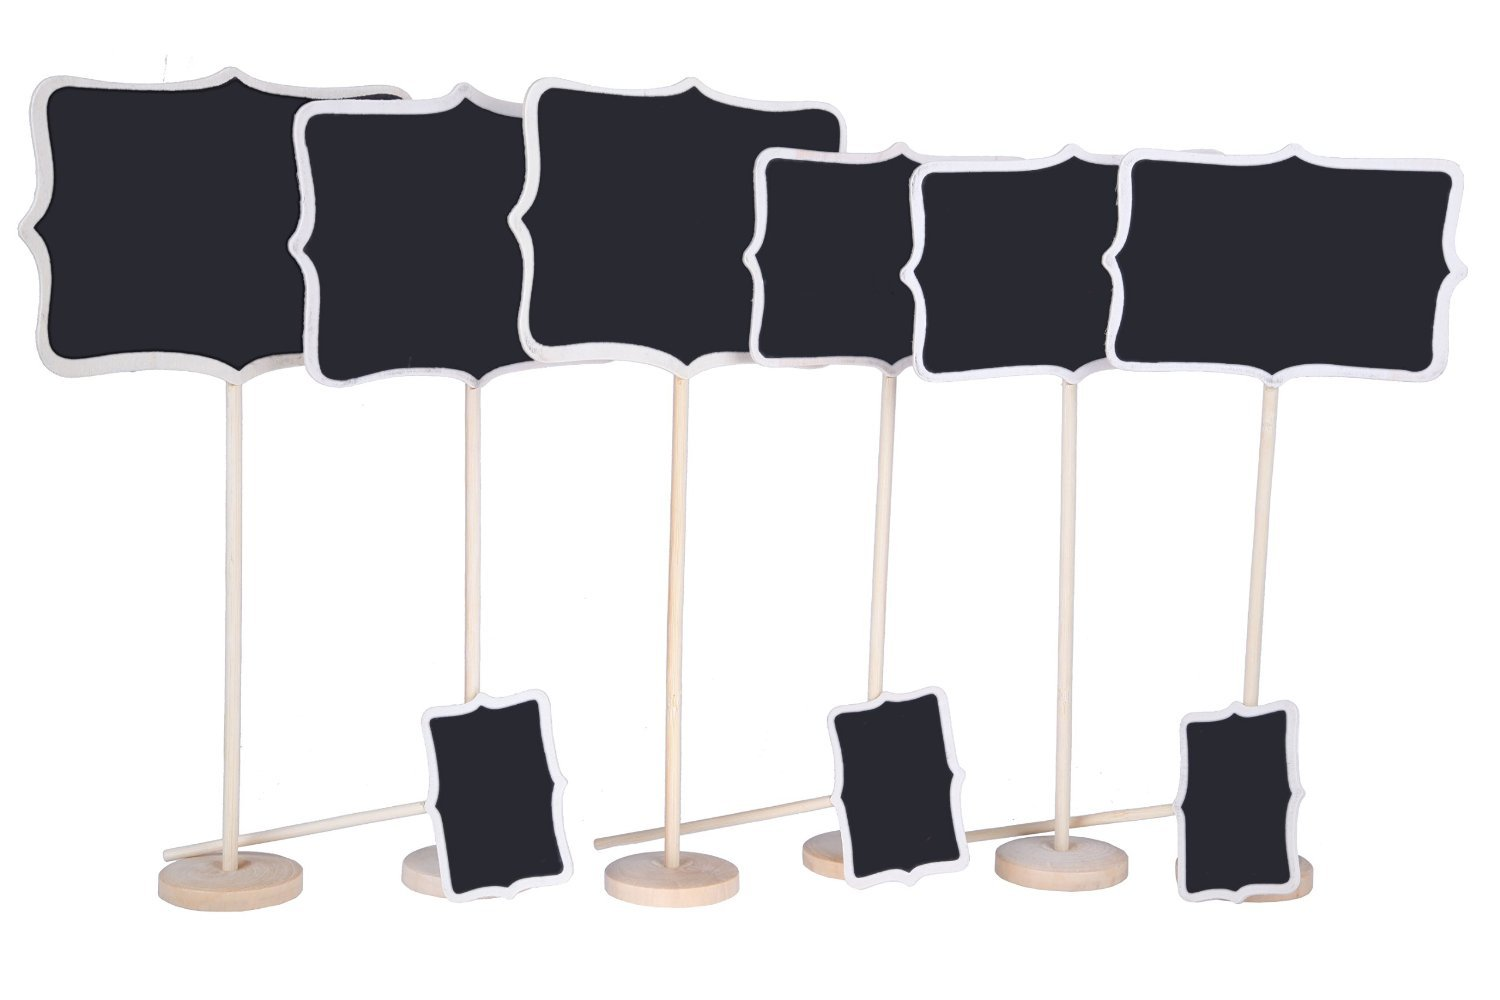 Juvale Vintage Photo Booth Props/Wedding Party Table Number Place Card Chalkboard/Blackboard Stand - 9 Piece Set - Lrg 6.5 x 14 Med 5.9 x 12 Sml 3.3 x 6.5 inches